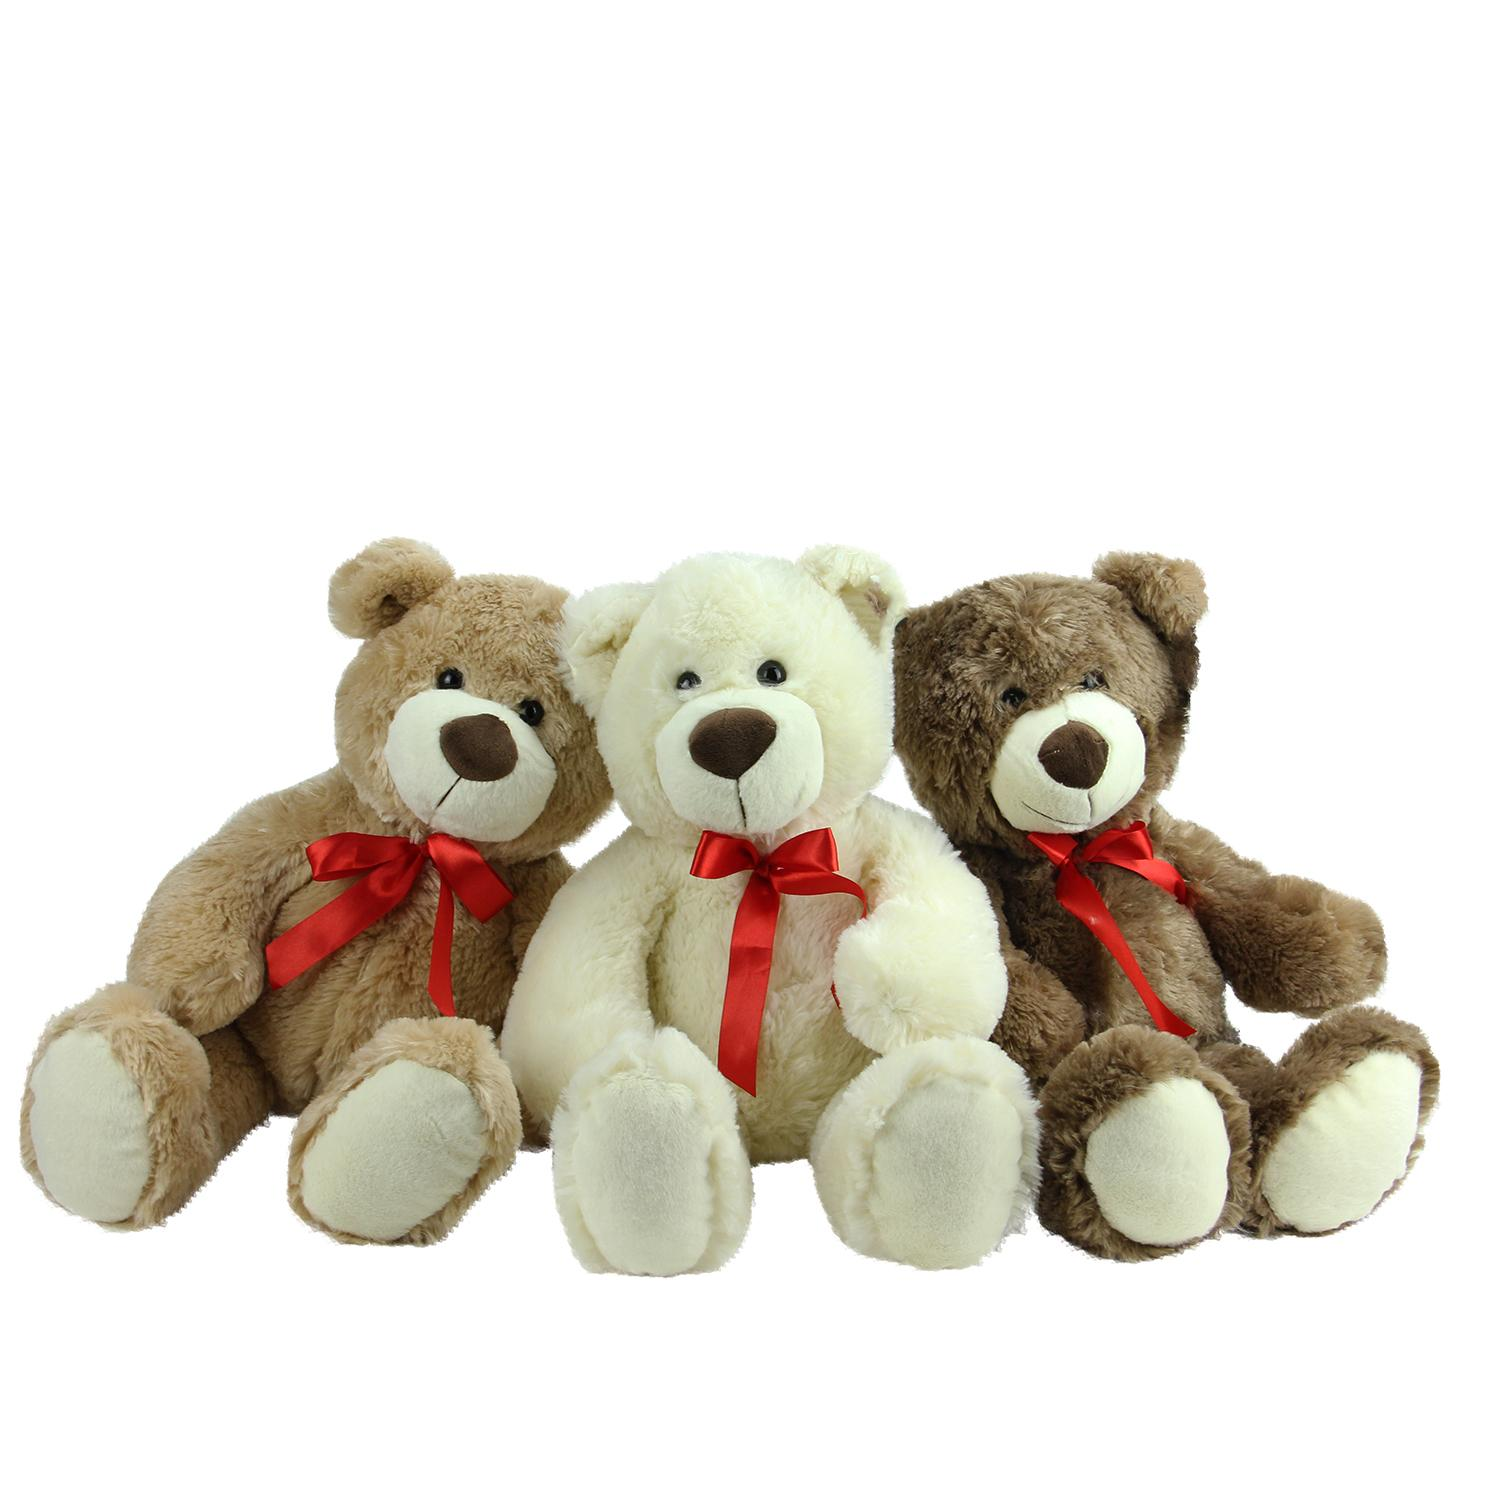 Set of 3 Brown Tan & Cream Plush Children's Teddy Bear Stuffed Animal Toys 20""